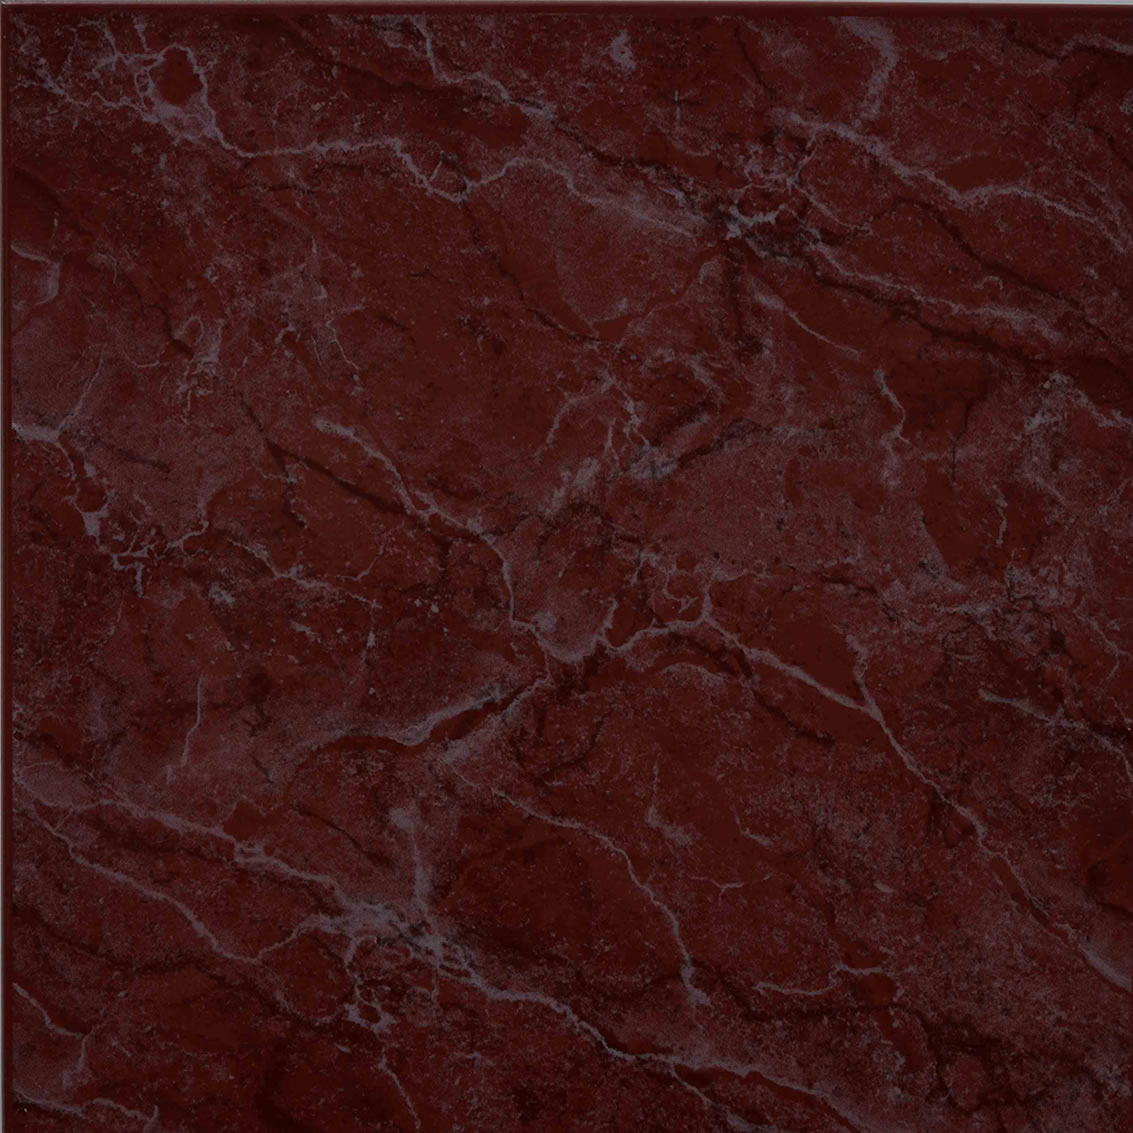 Burgundy Marble Royal Tiles